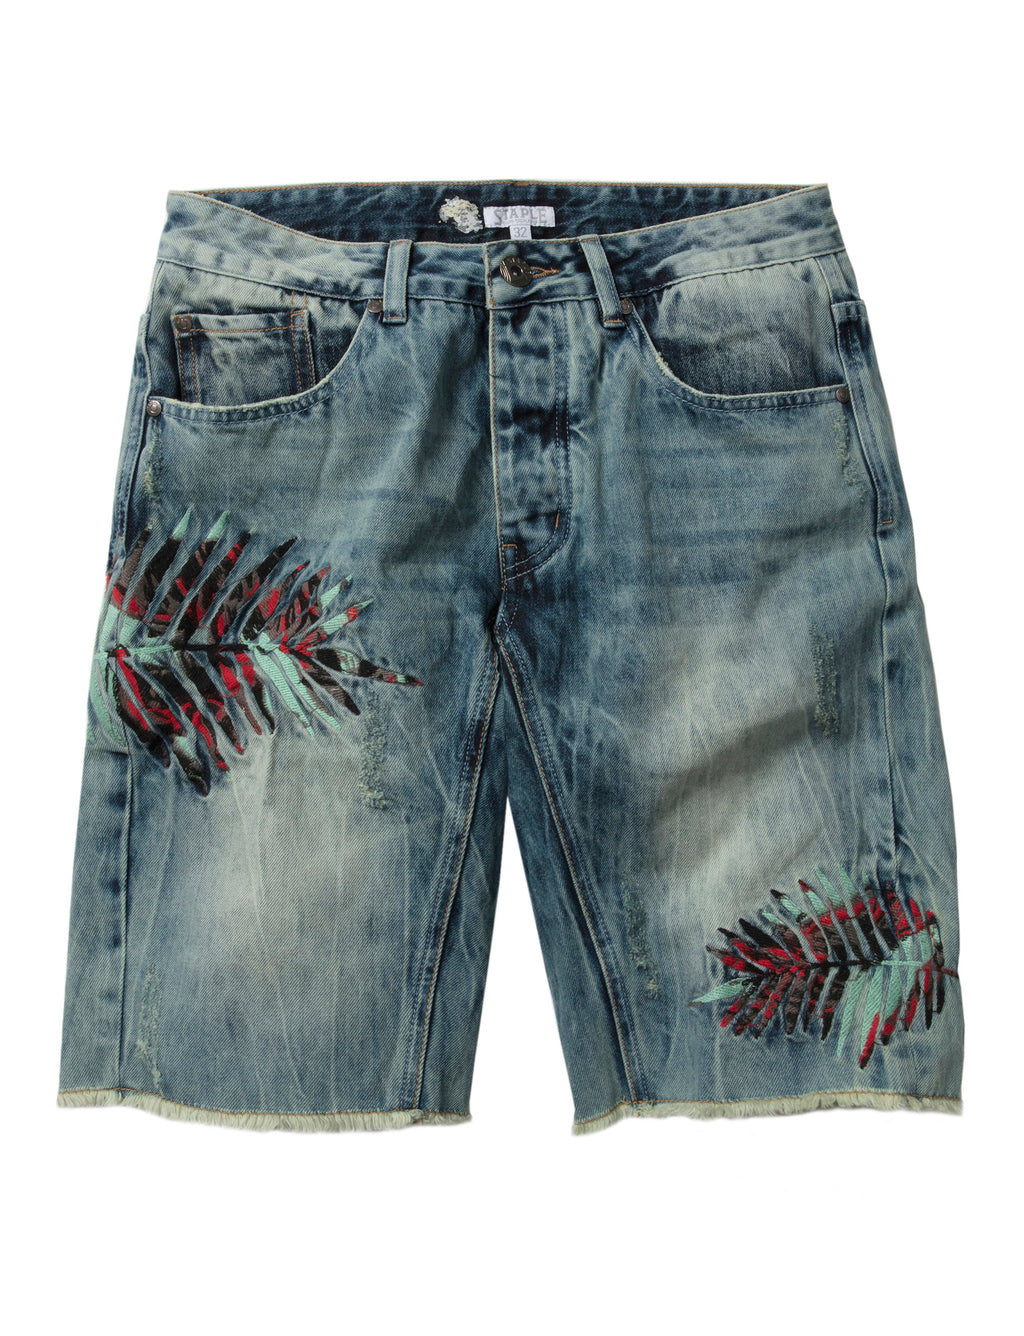 Jungle Denim Shorts - Shorts | Staple Pigeon